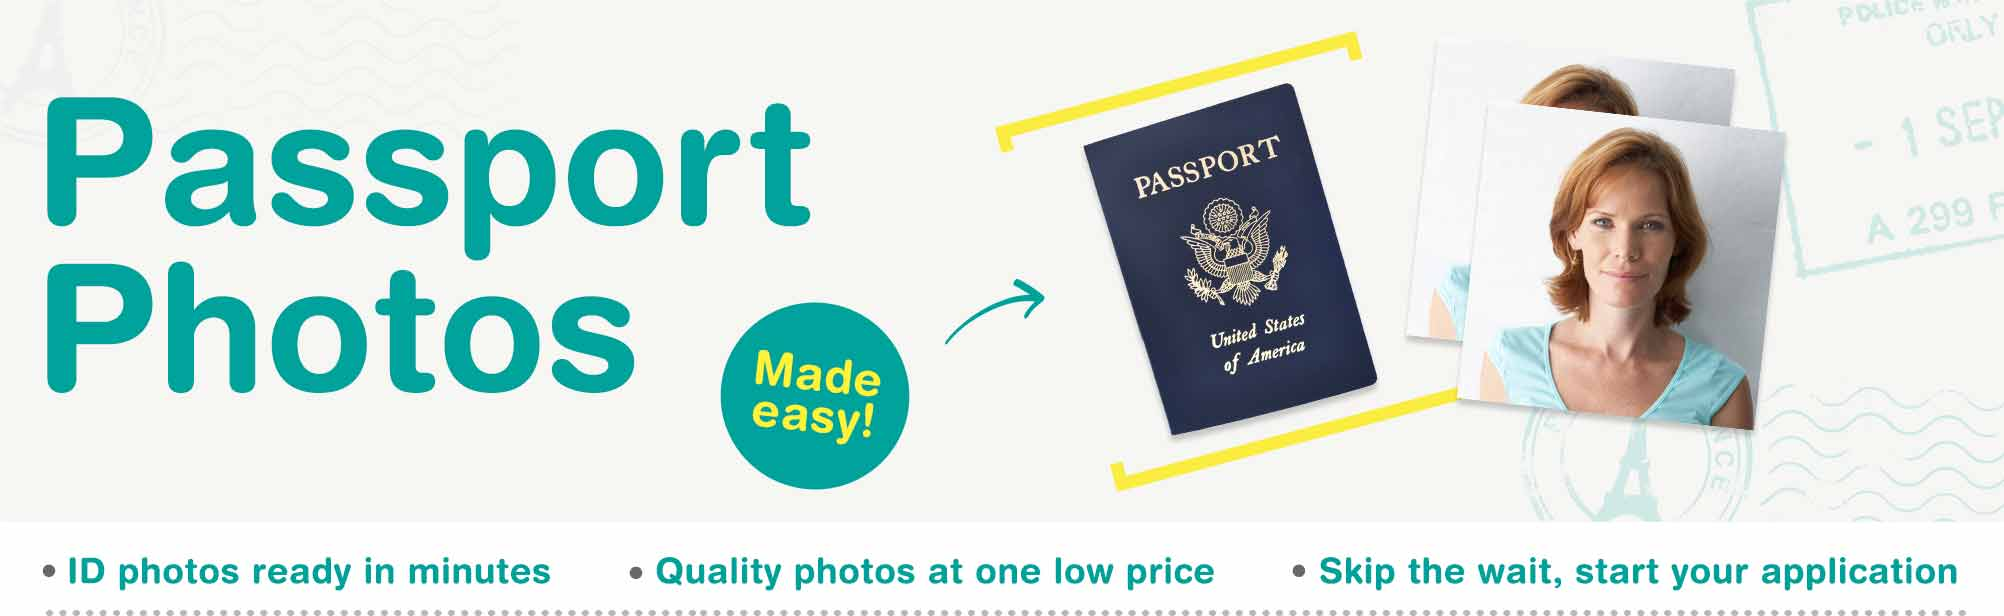 Passport Photo Deals at Walgreens: Walgreens normally charges $ for